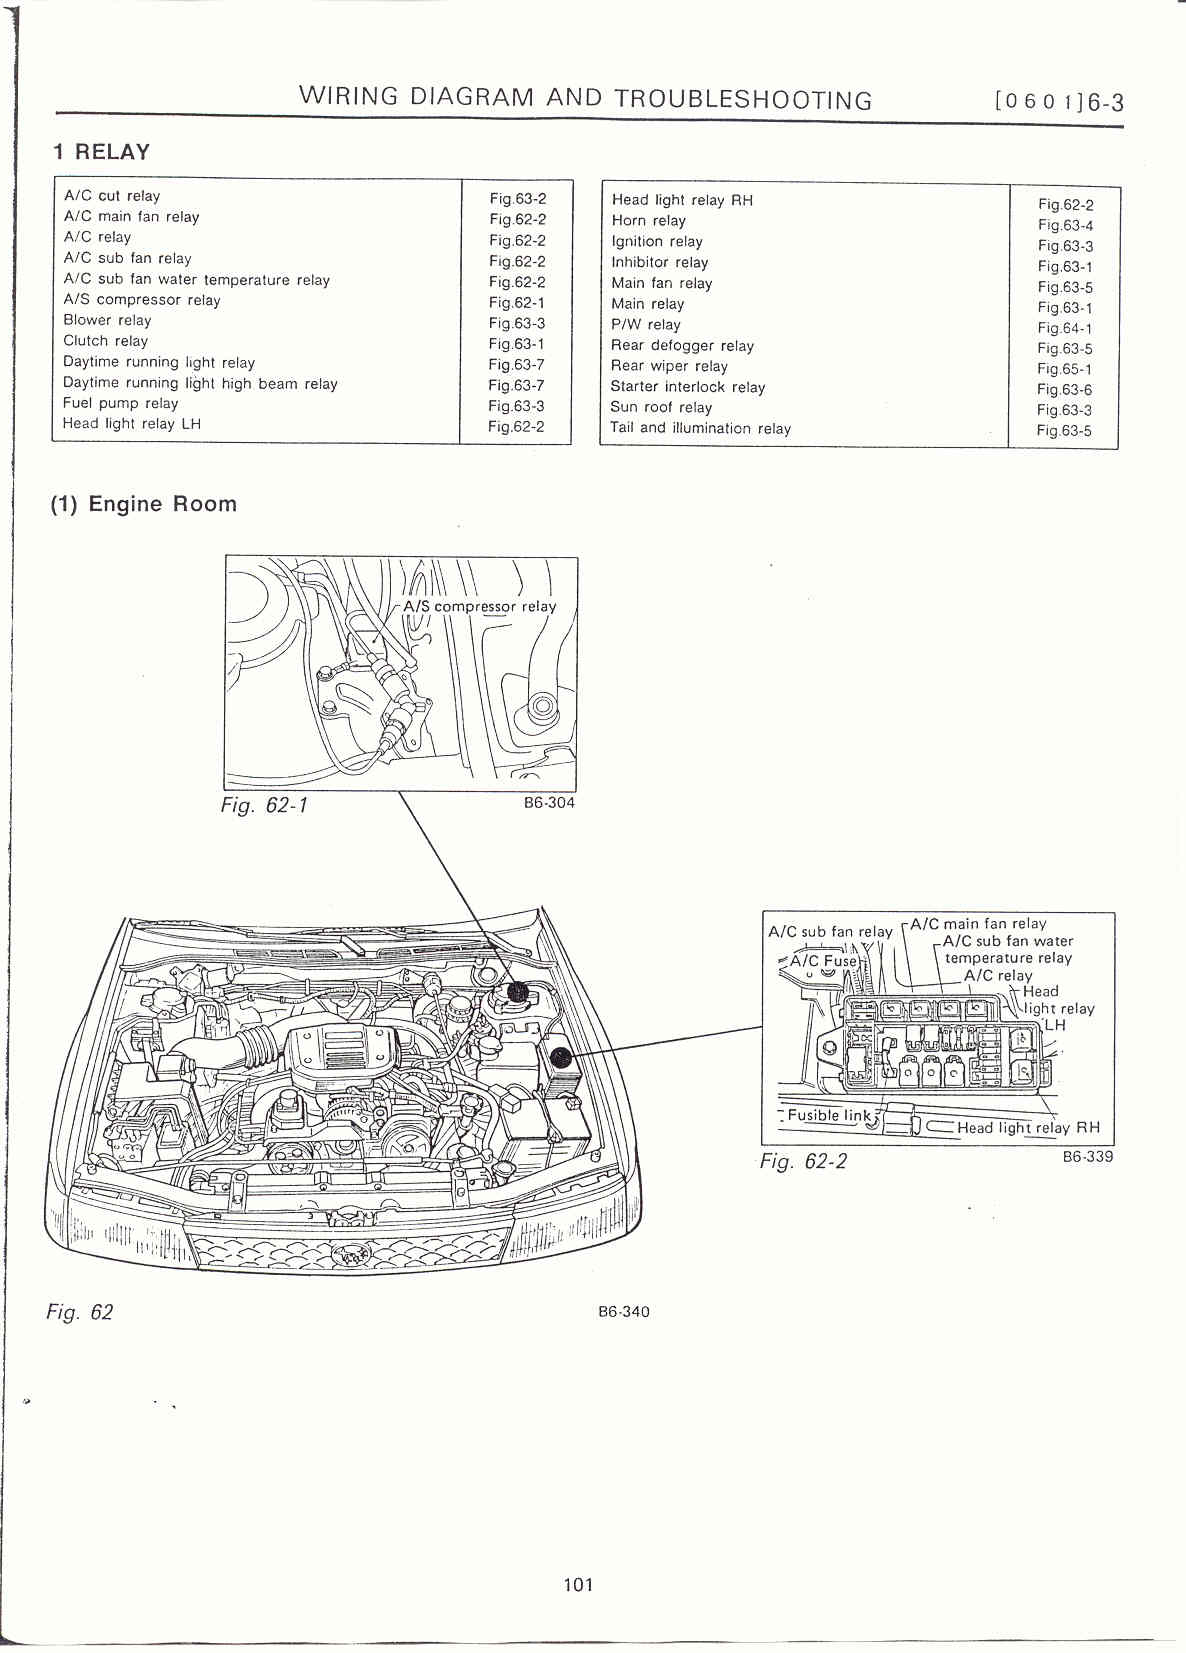 1997 subaru fuse box diagram  u2022 wiring diagram for free